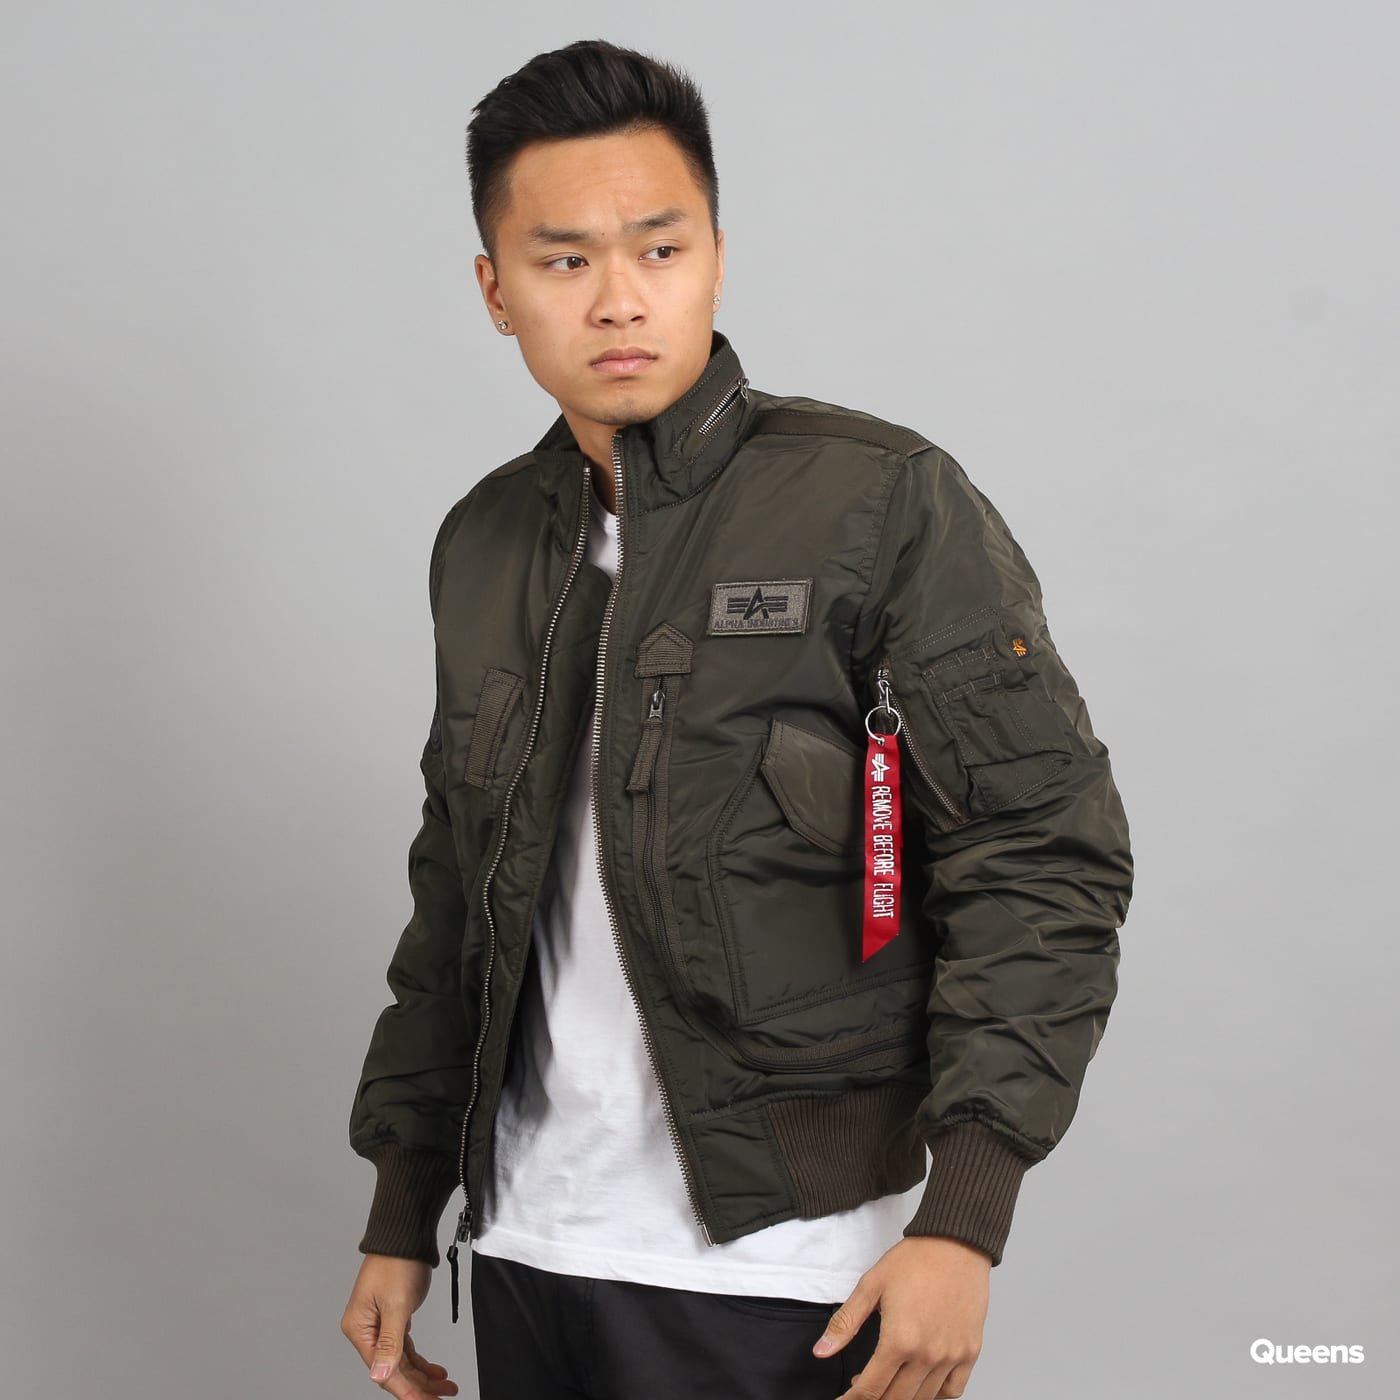 88e2ae120 Bomber bunda Alpha Industries Engine (103101 04) – Queens 💚